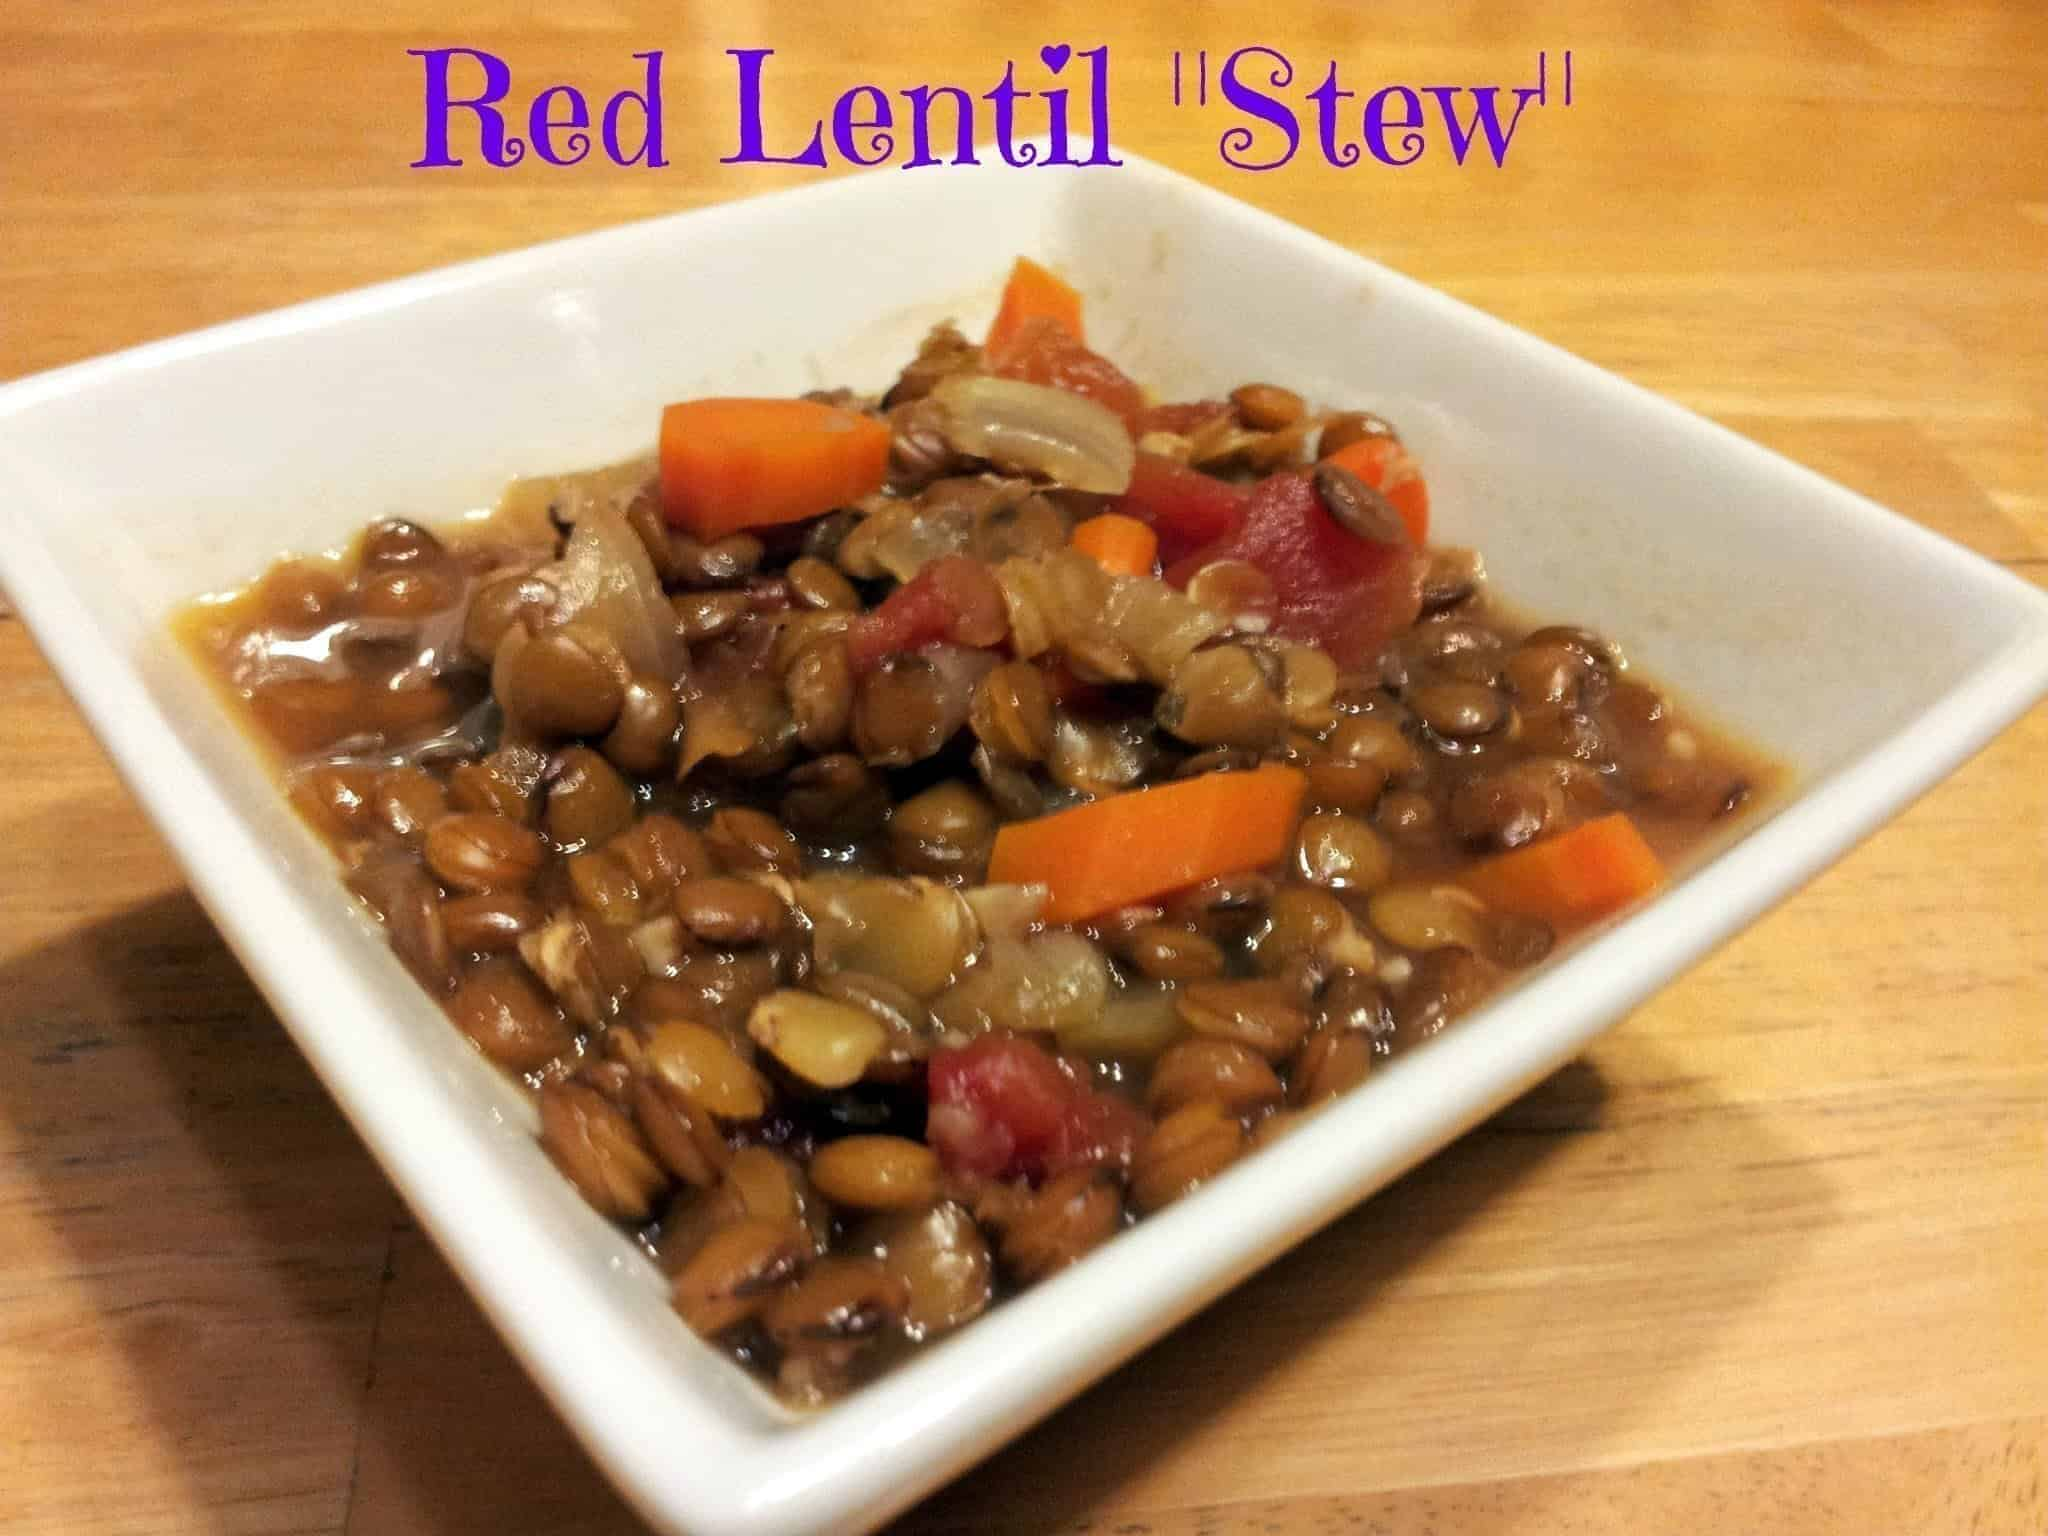 Bowl of vegan red lentil stew